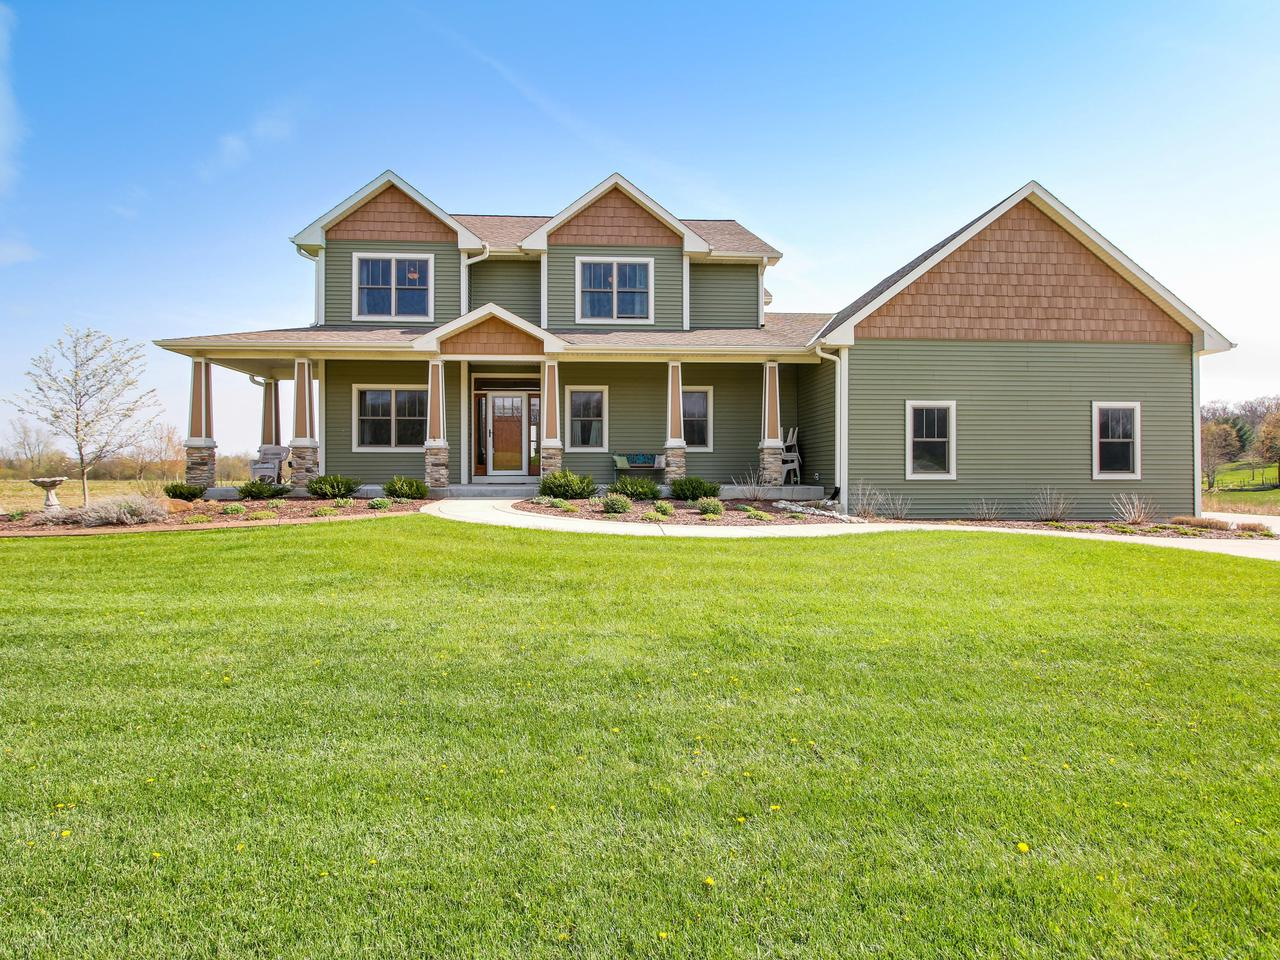 S103W22200 Kelsey Ave AVENUE, VERNON, WI 53103